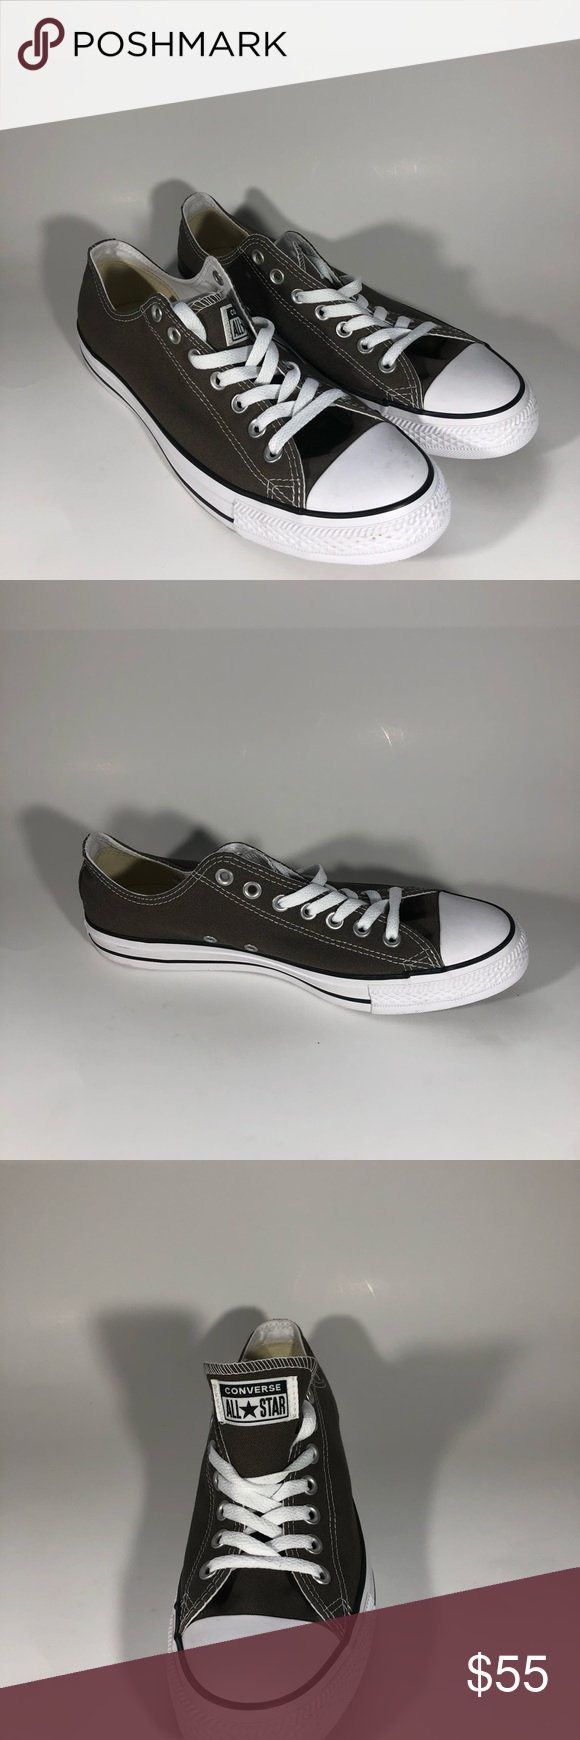 0aebe578b143 Converse Chuck Taylor All Star OX Converse Chuck Taylor All Star OX Metallic  Herbal 153182F Unisex